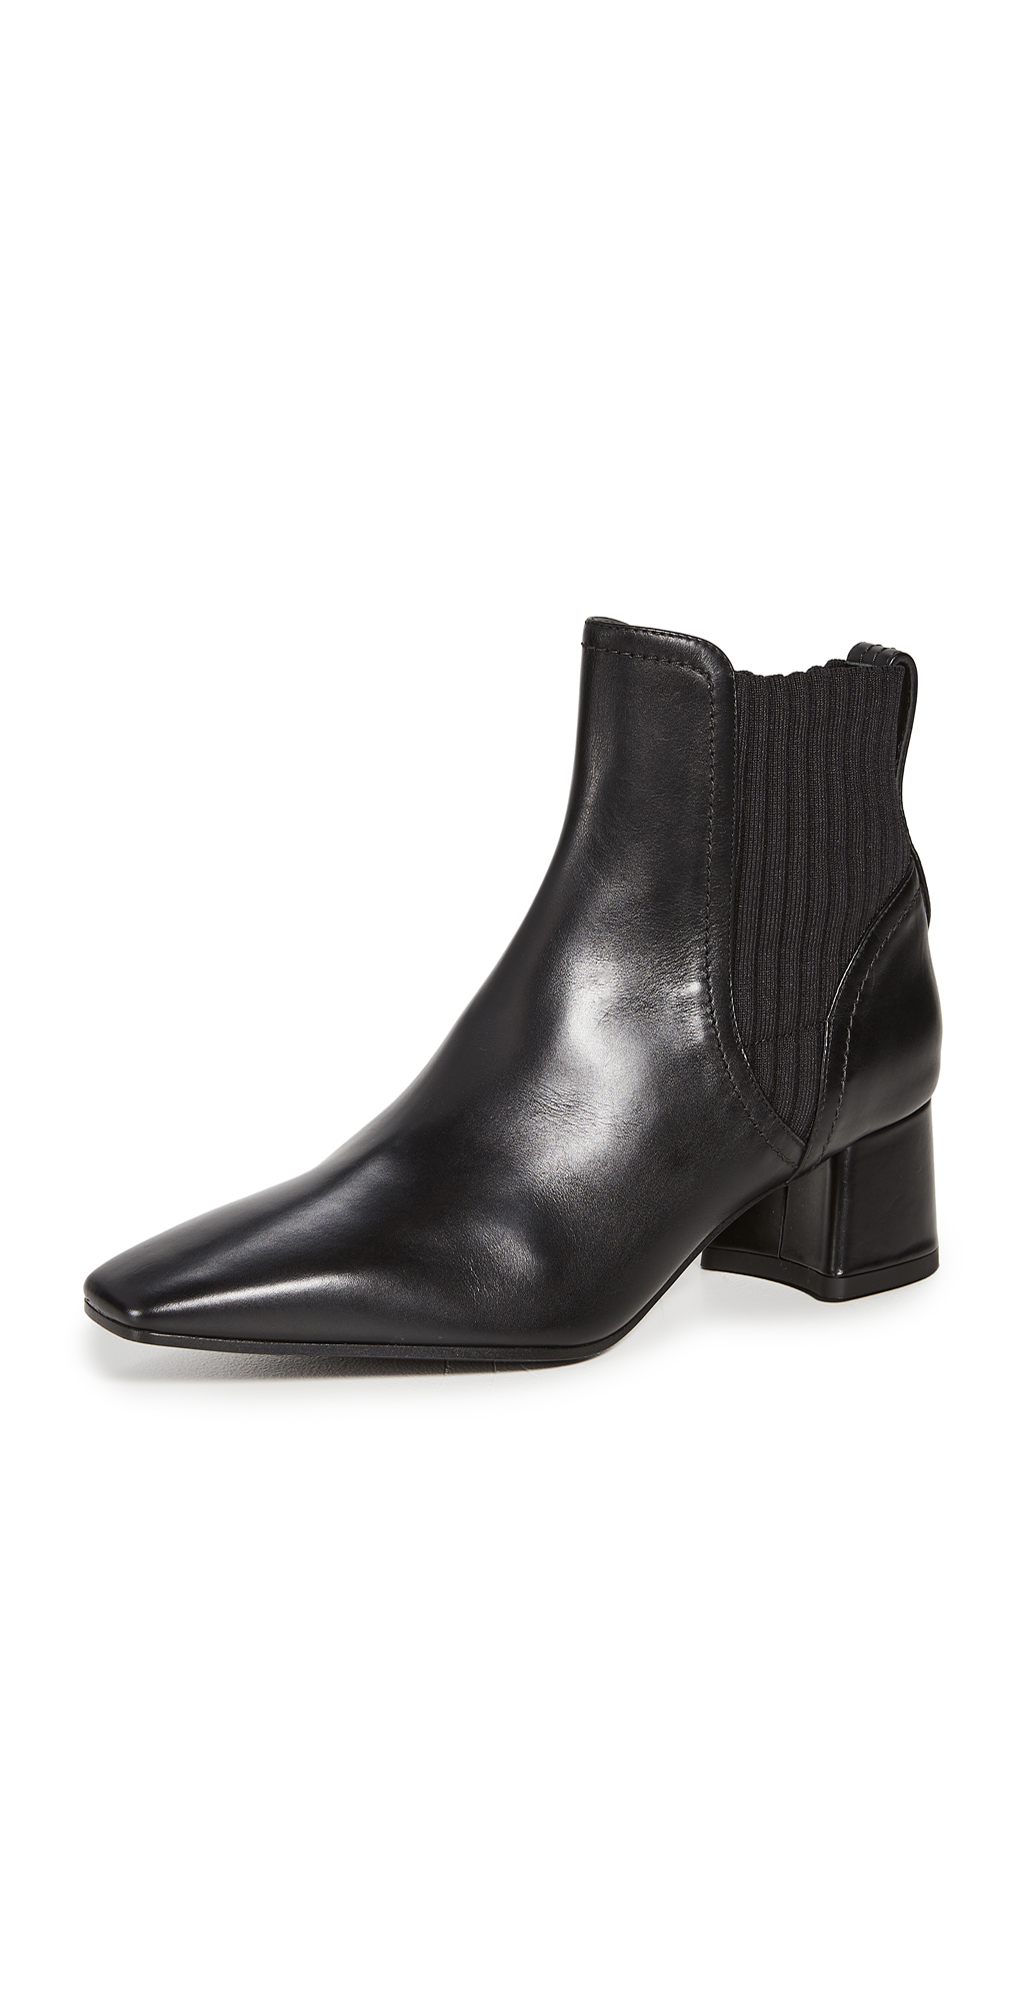 Marion Parke Patti Heeled Chelsea Boots